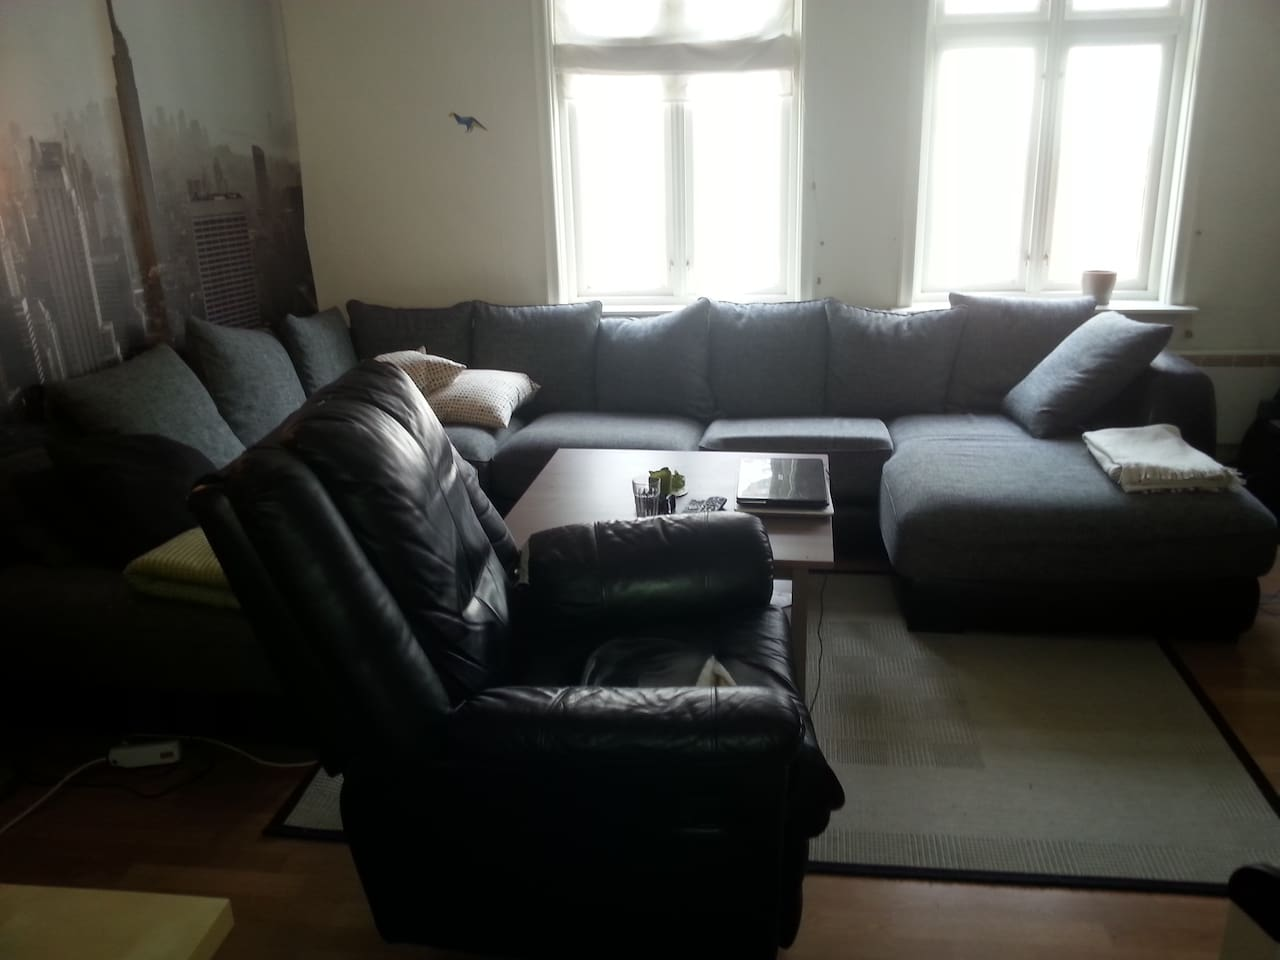 Living room. Fairly new couch.